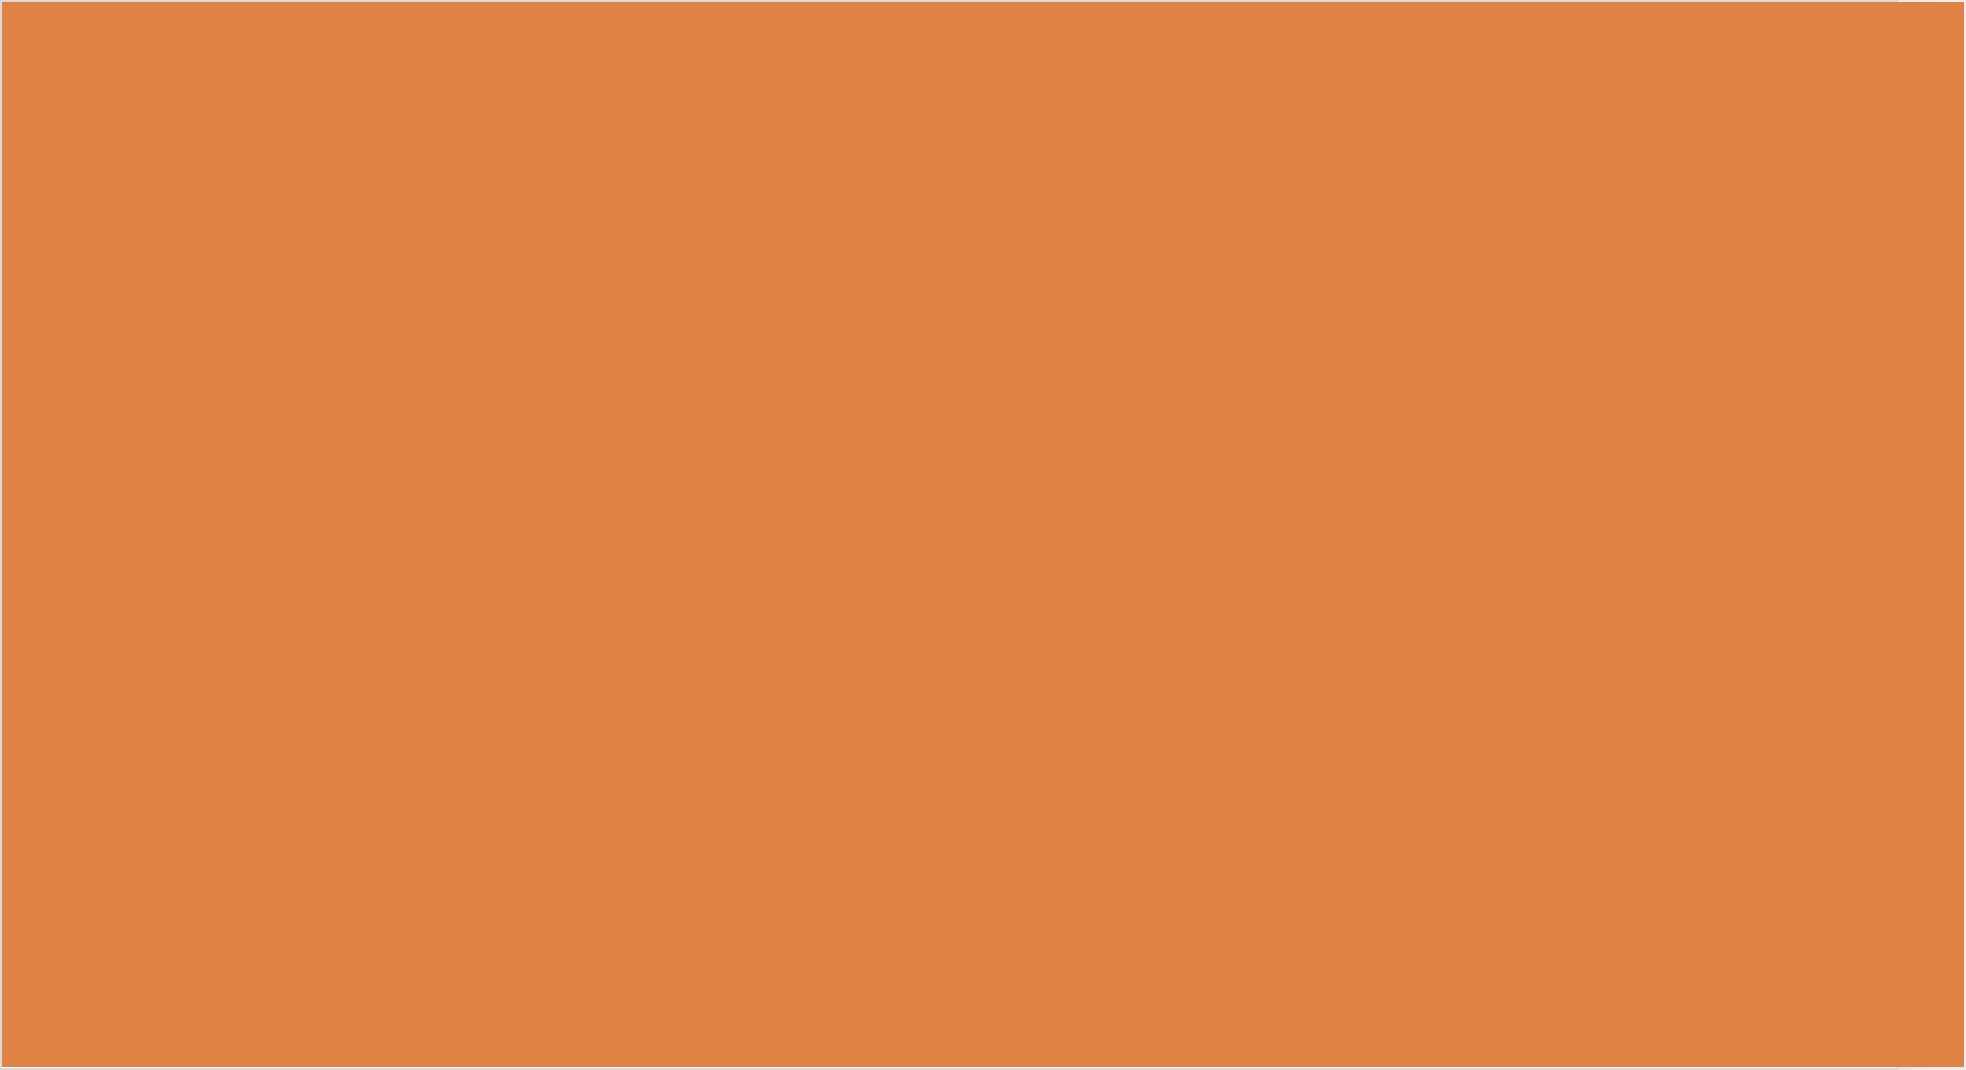 CA Foundation Principles and Practice of Accounting May 2022 | Google Drive cover